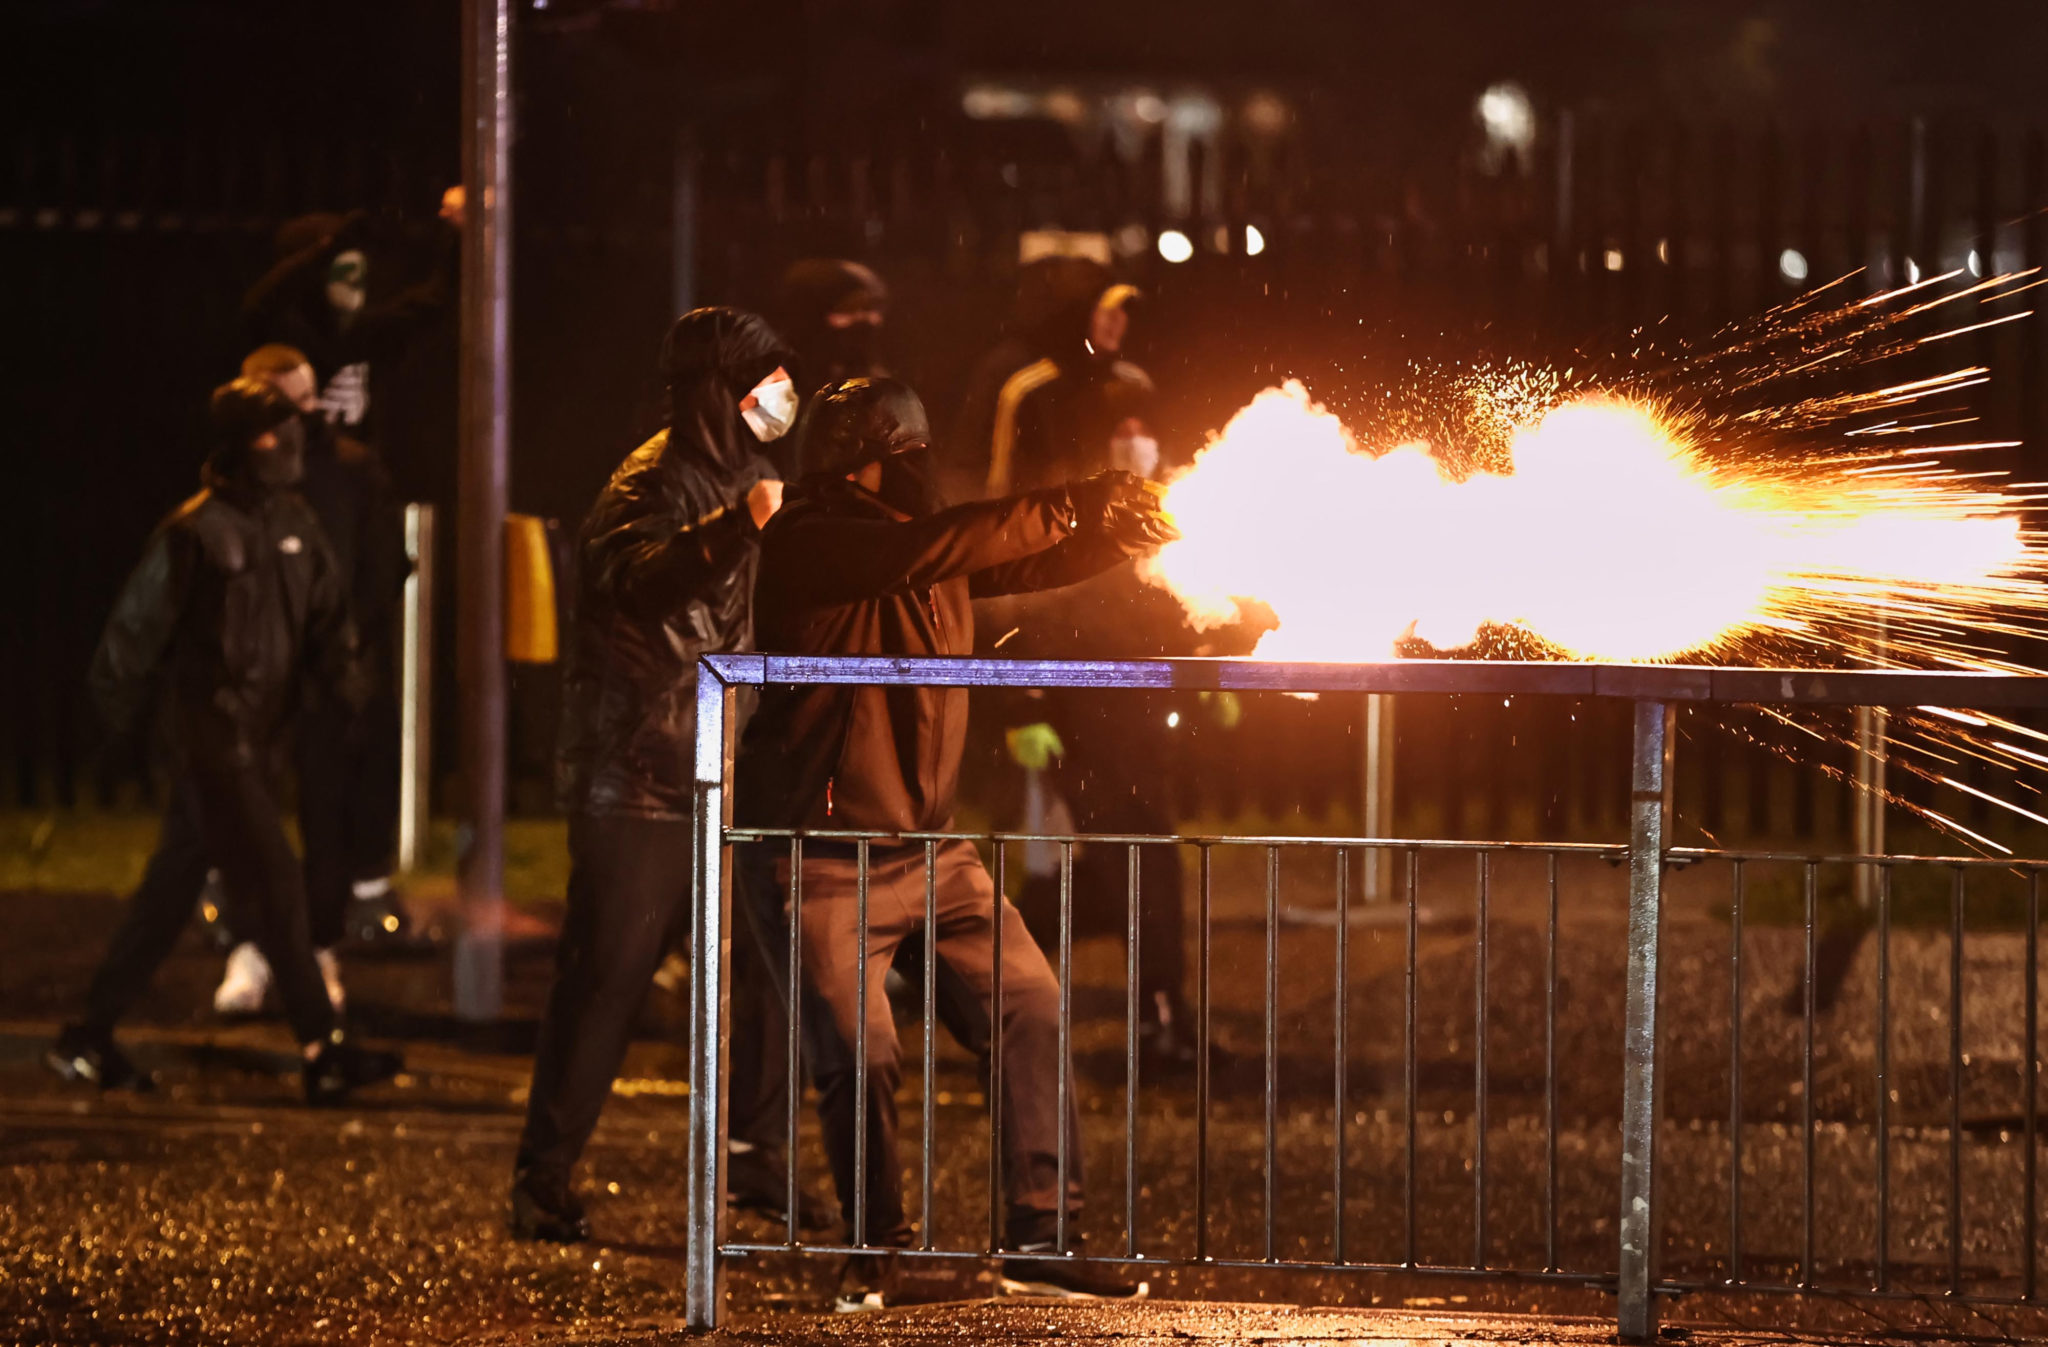 Youths fire fireworks at the PSNI on the Springfield road, during further unrest in Belfast